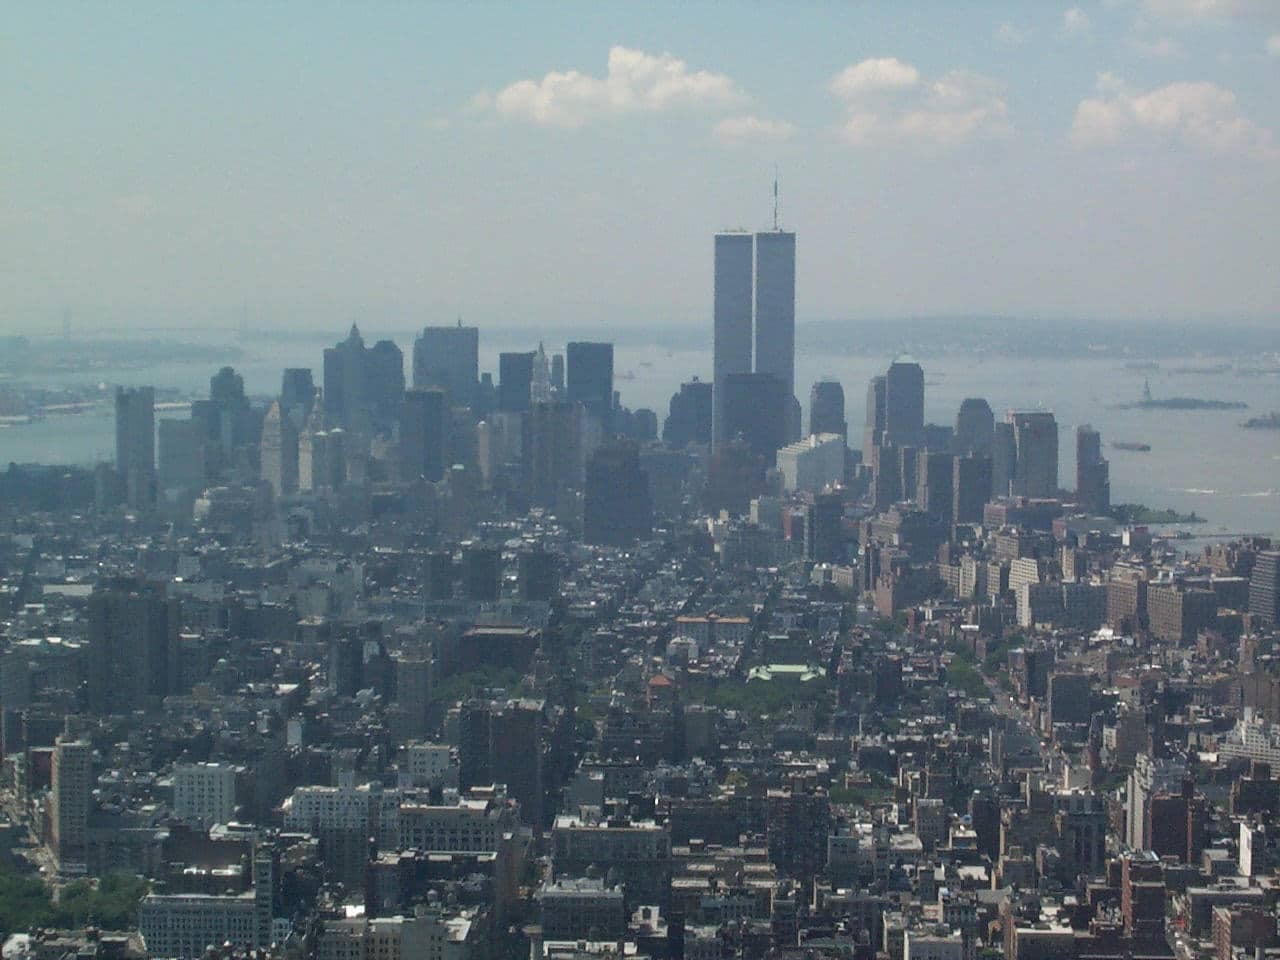 View of World Trade Center twin towers from the Empire State Building during the summer of 2001